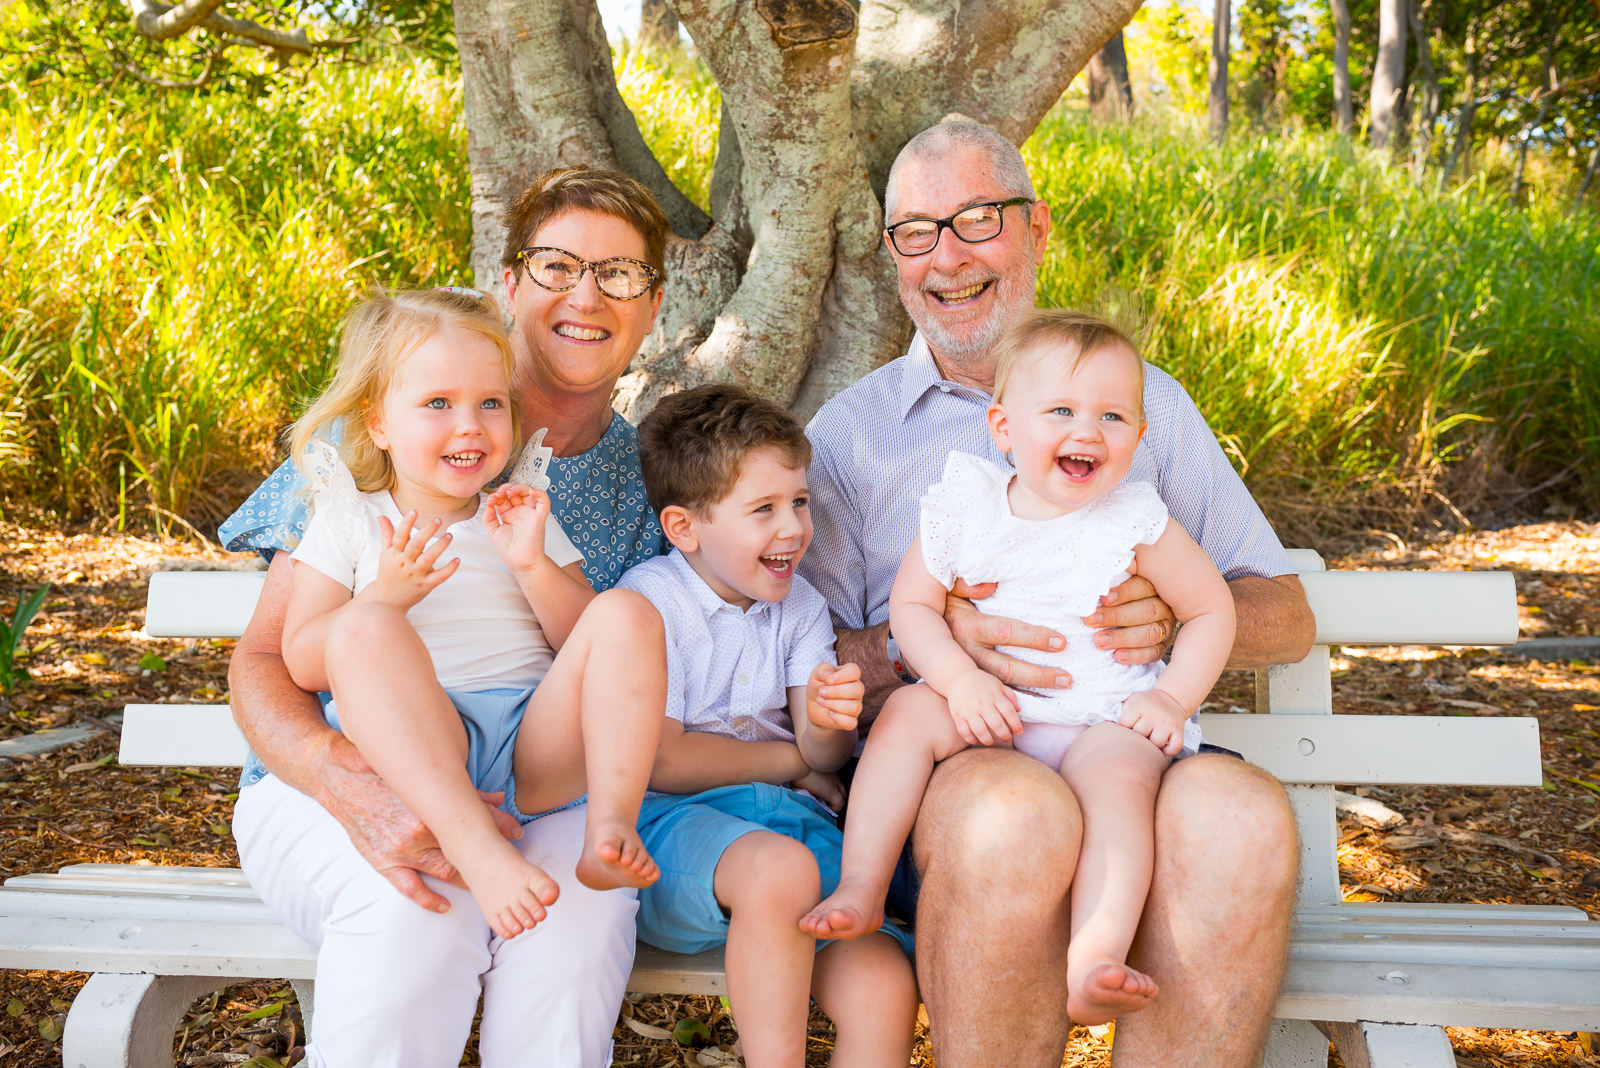 Outdoor Family Photography in the Caboolture Region